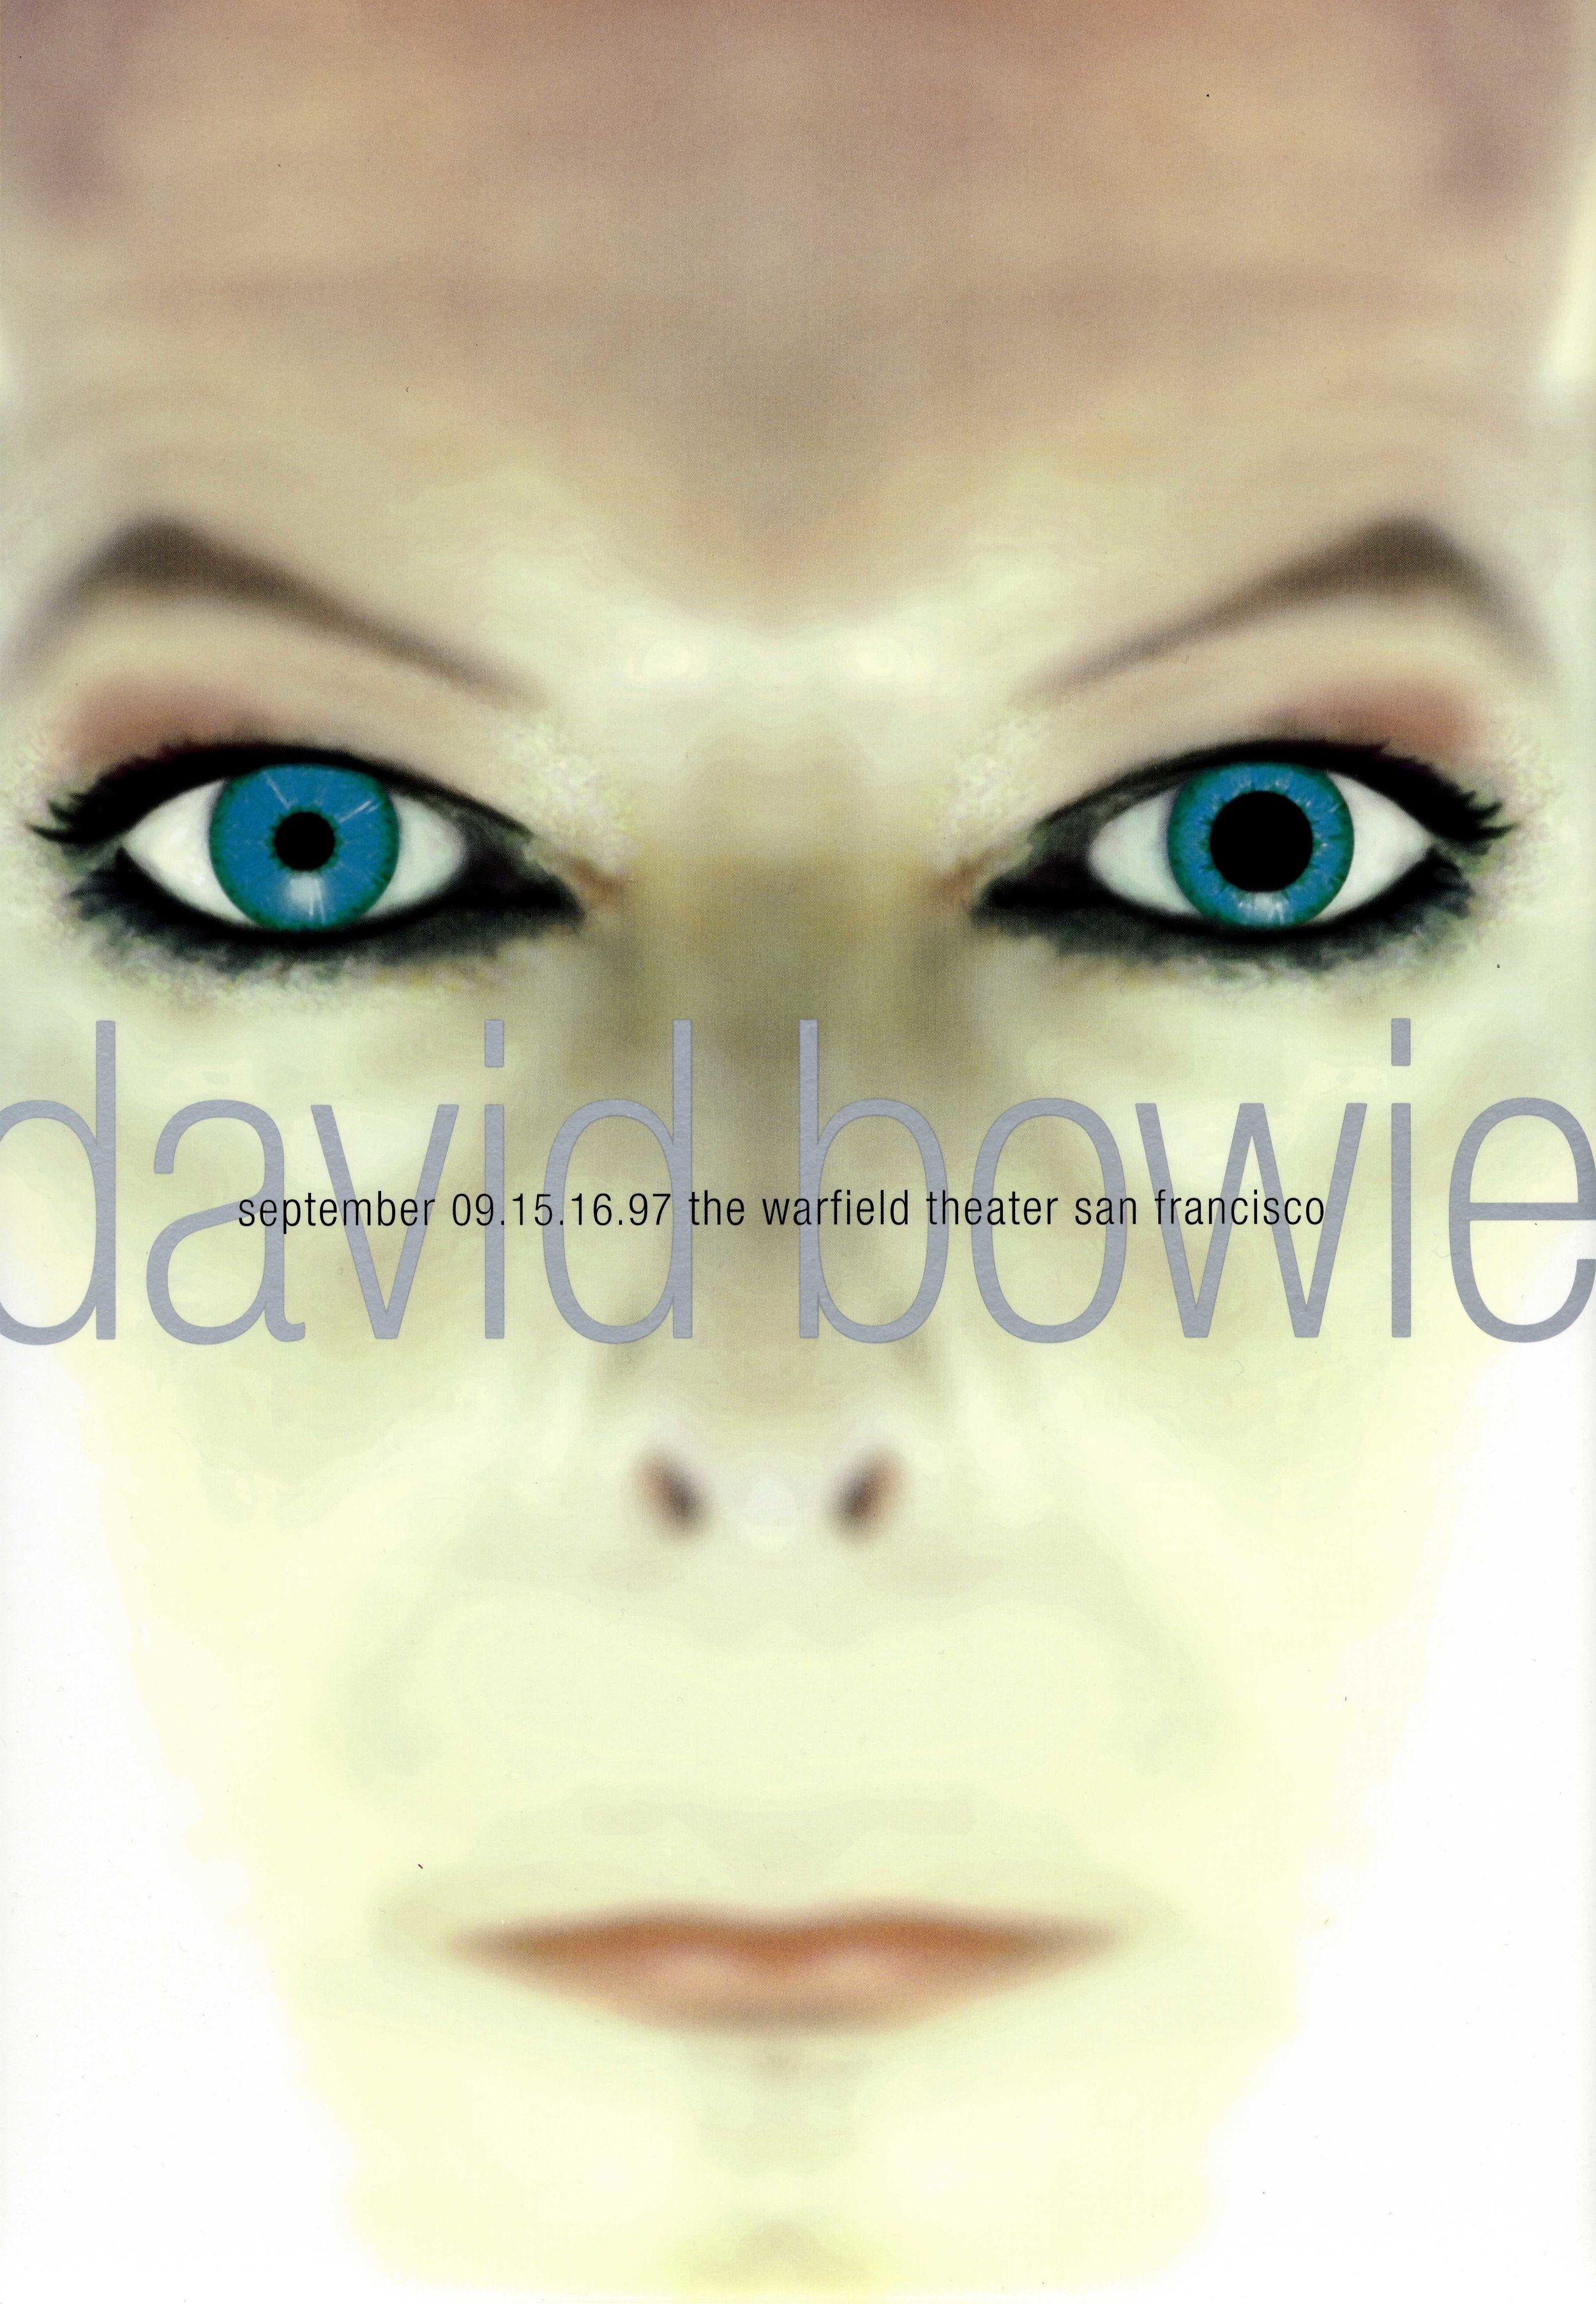 Poster for a David Bowie concert (1997), Rex Ray Graphic Art Collection, GLBT Historical Society, gift of the Estate of Rex Ray.